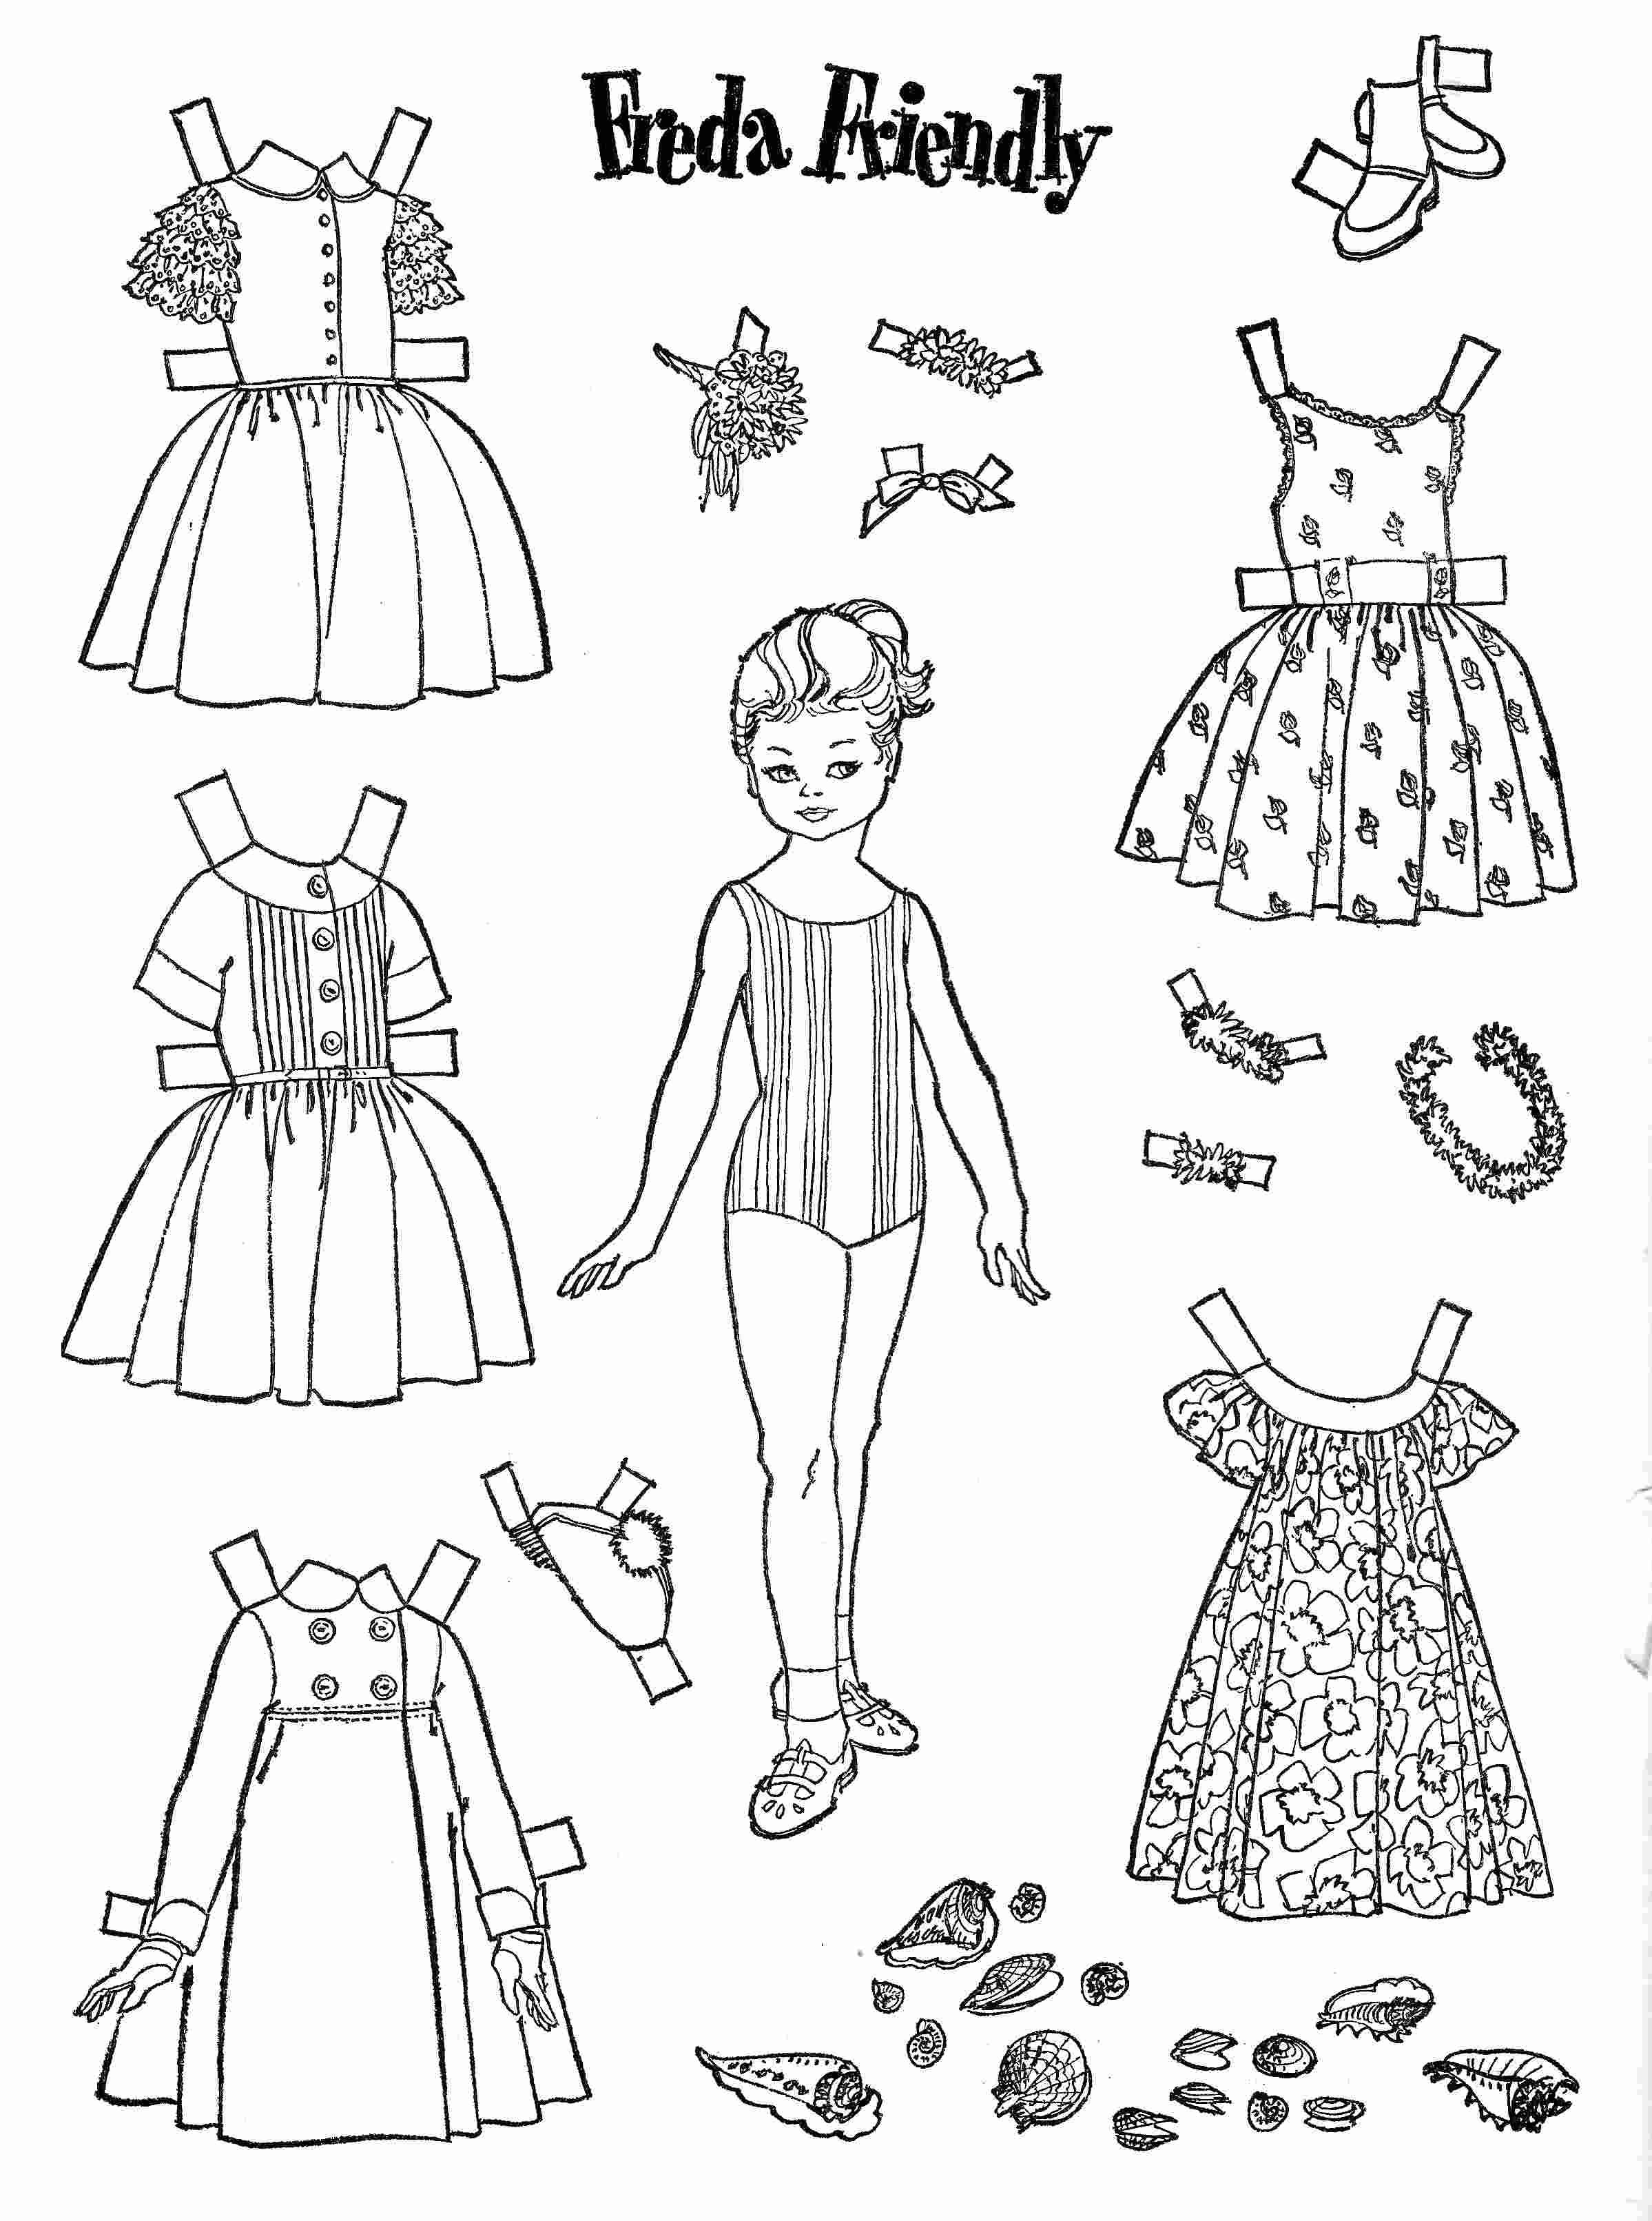 dress up paper doll coloring pages paper doll dress up coloring pages new up paper doll dress